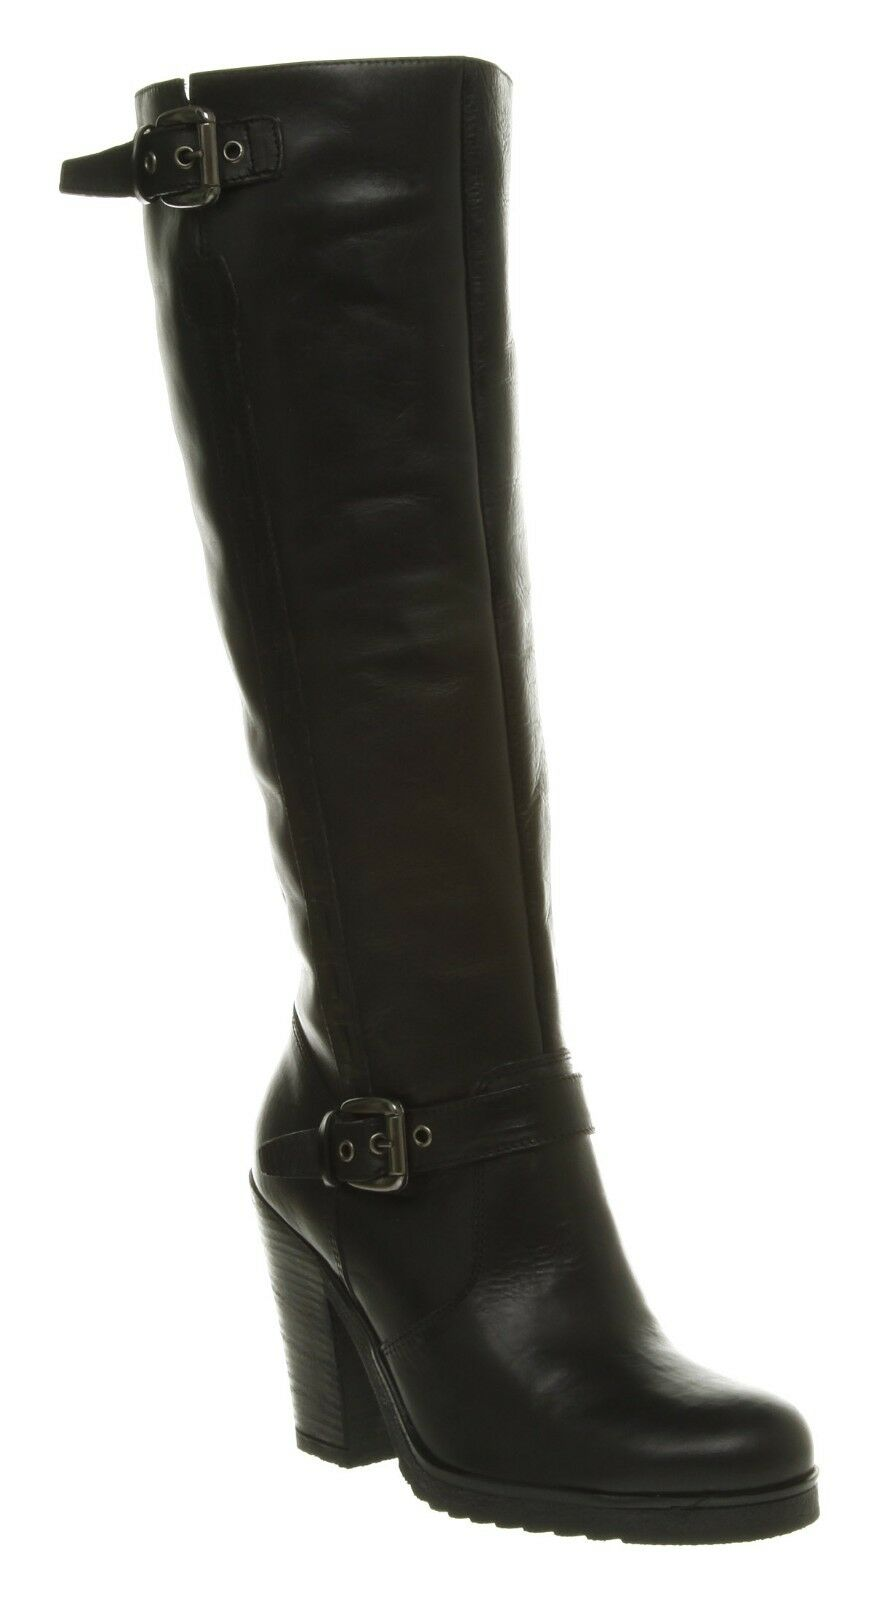 Womens Office Jane Side Stitch Boot Black Leather Boots . Reg-Price $260